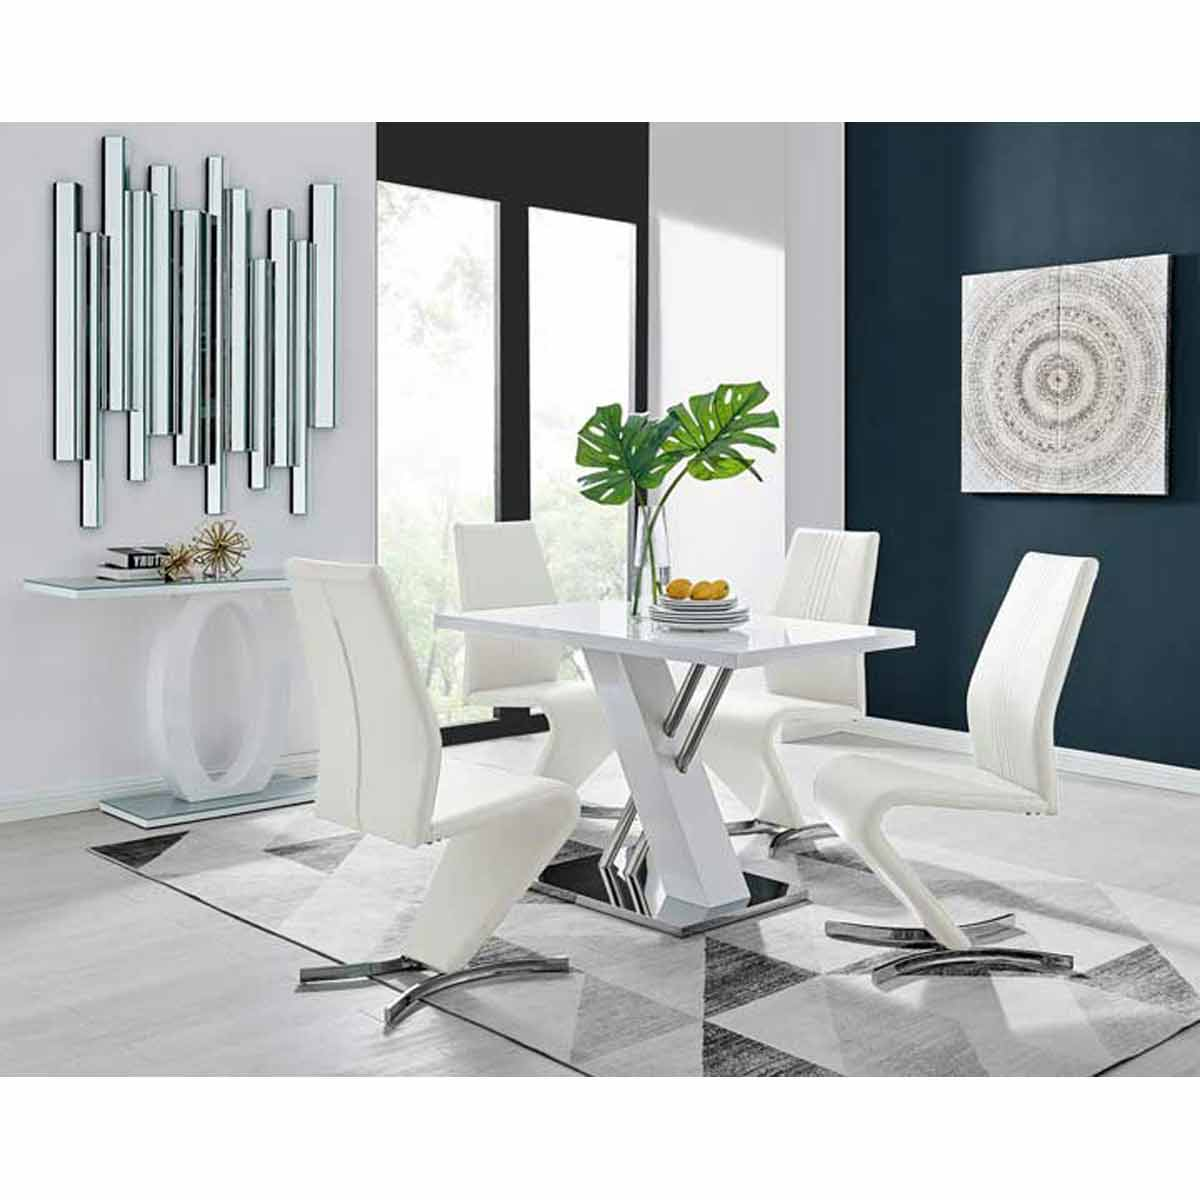 Furniture Box Sorrento 4 White High Gloss And Stainless Steel Dining Table And 4 Luxury White Willow Chairs Set